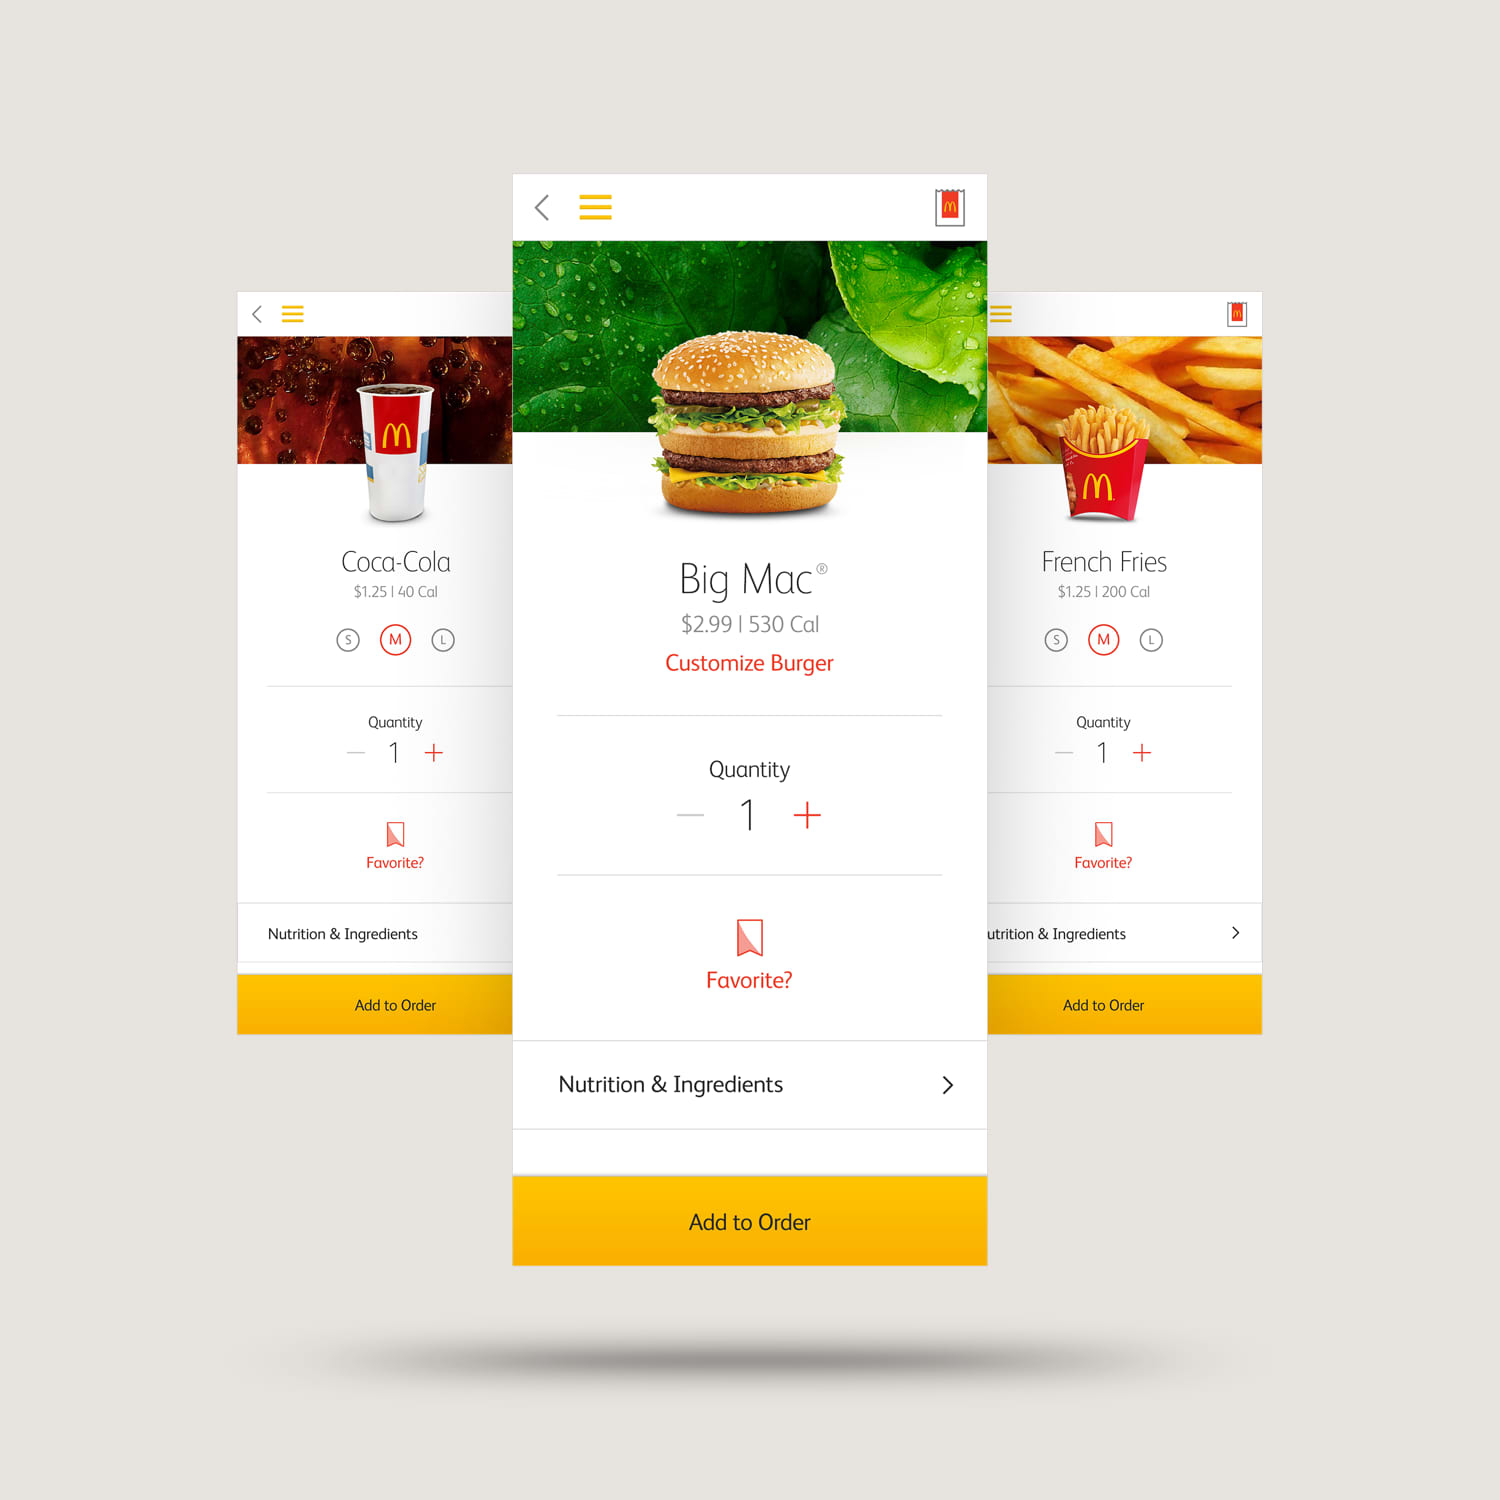 McDonald's Omni-Channel Digital Ordering Products